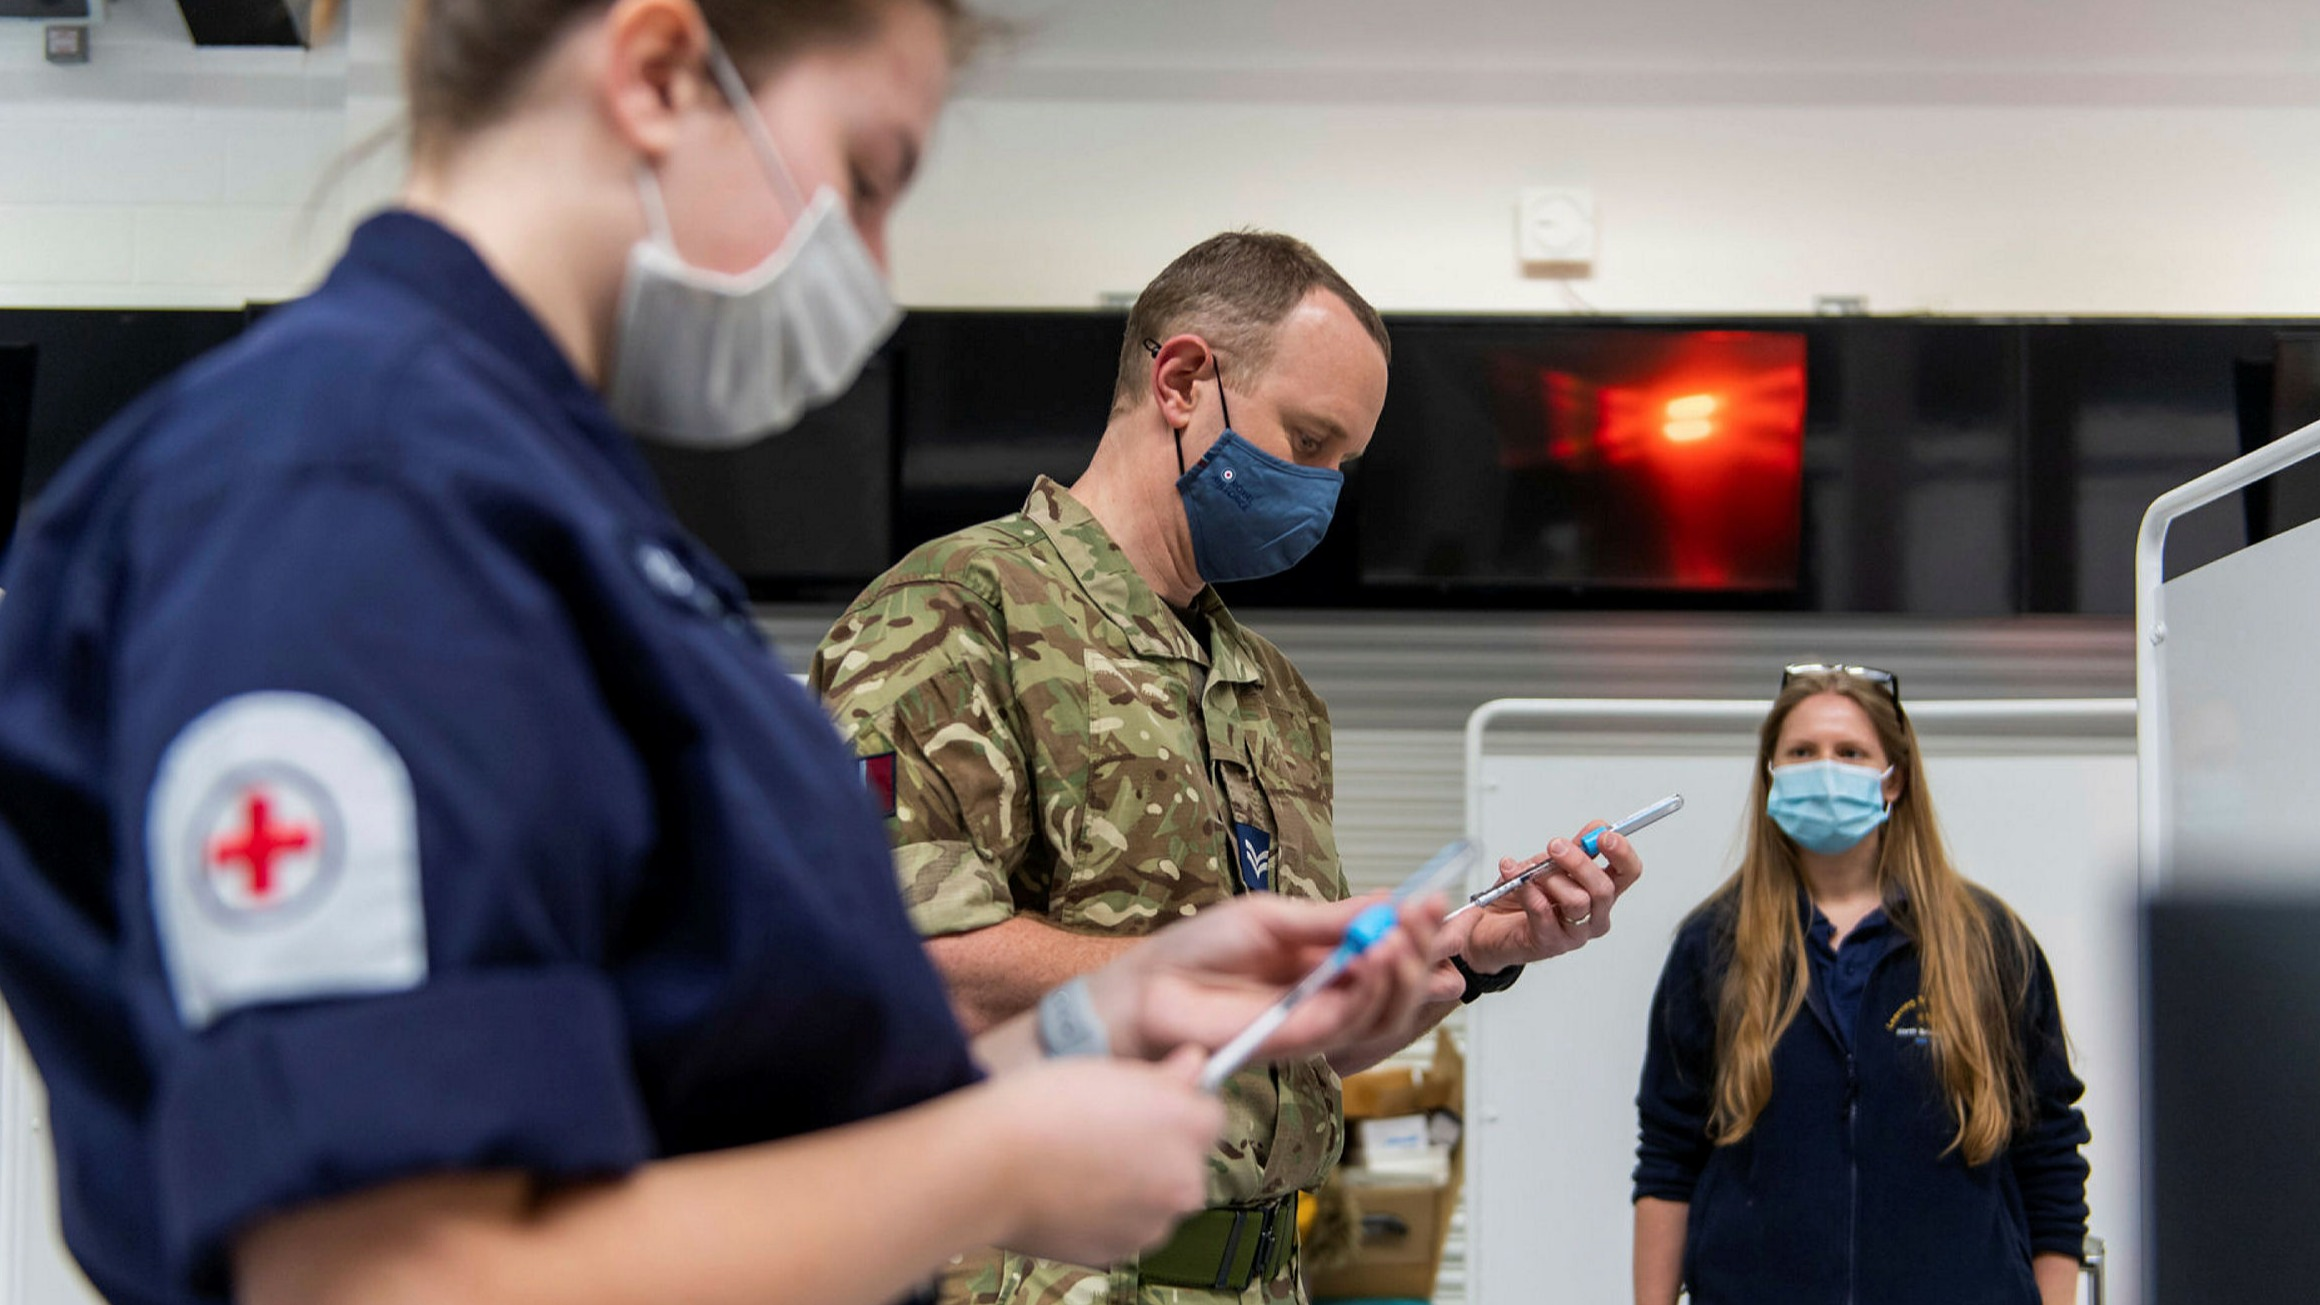 Military medics to work in UK hospitals as Covid admissions soar |  Financial Times